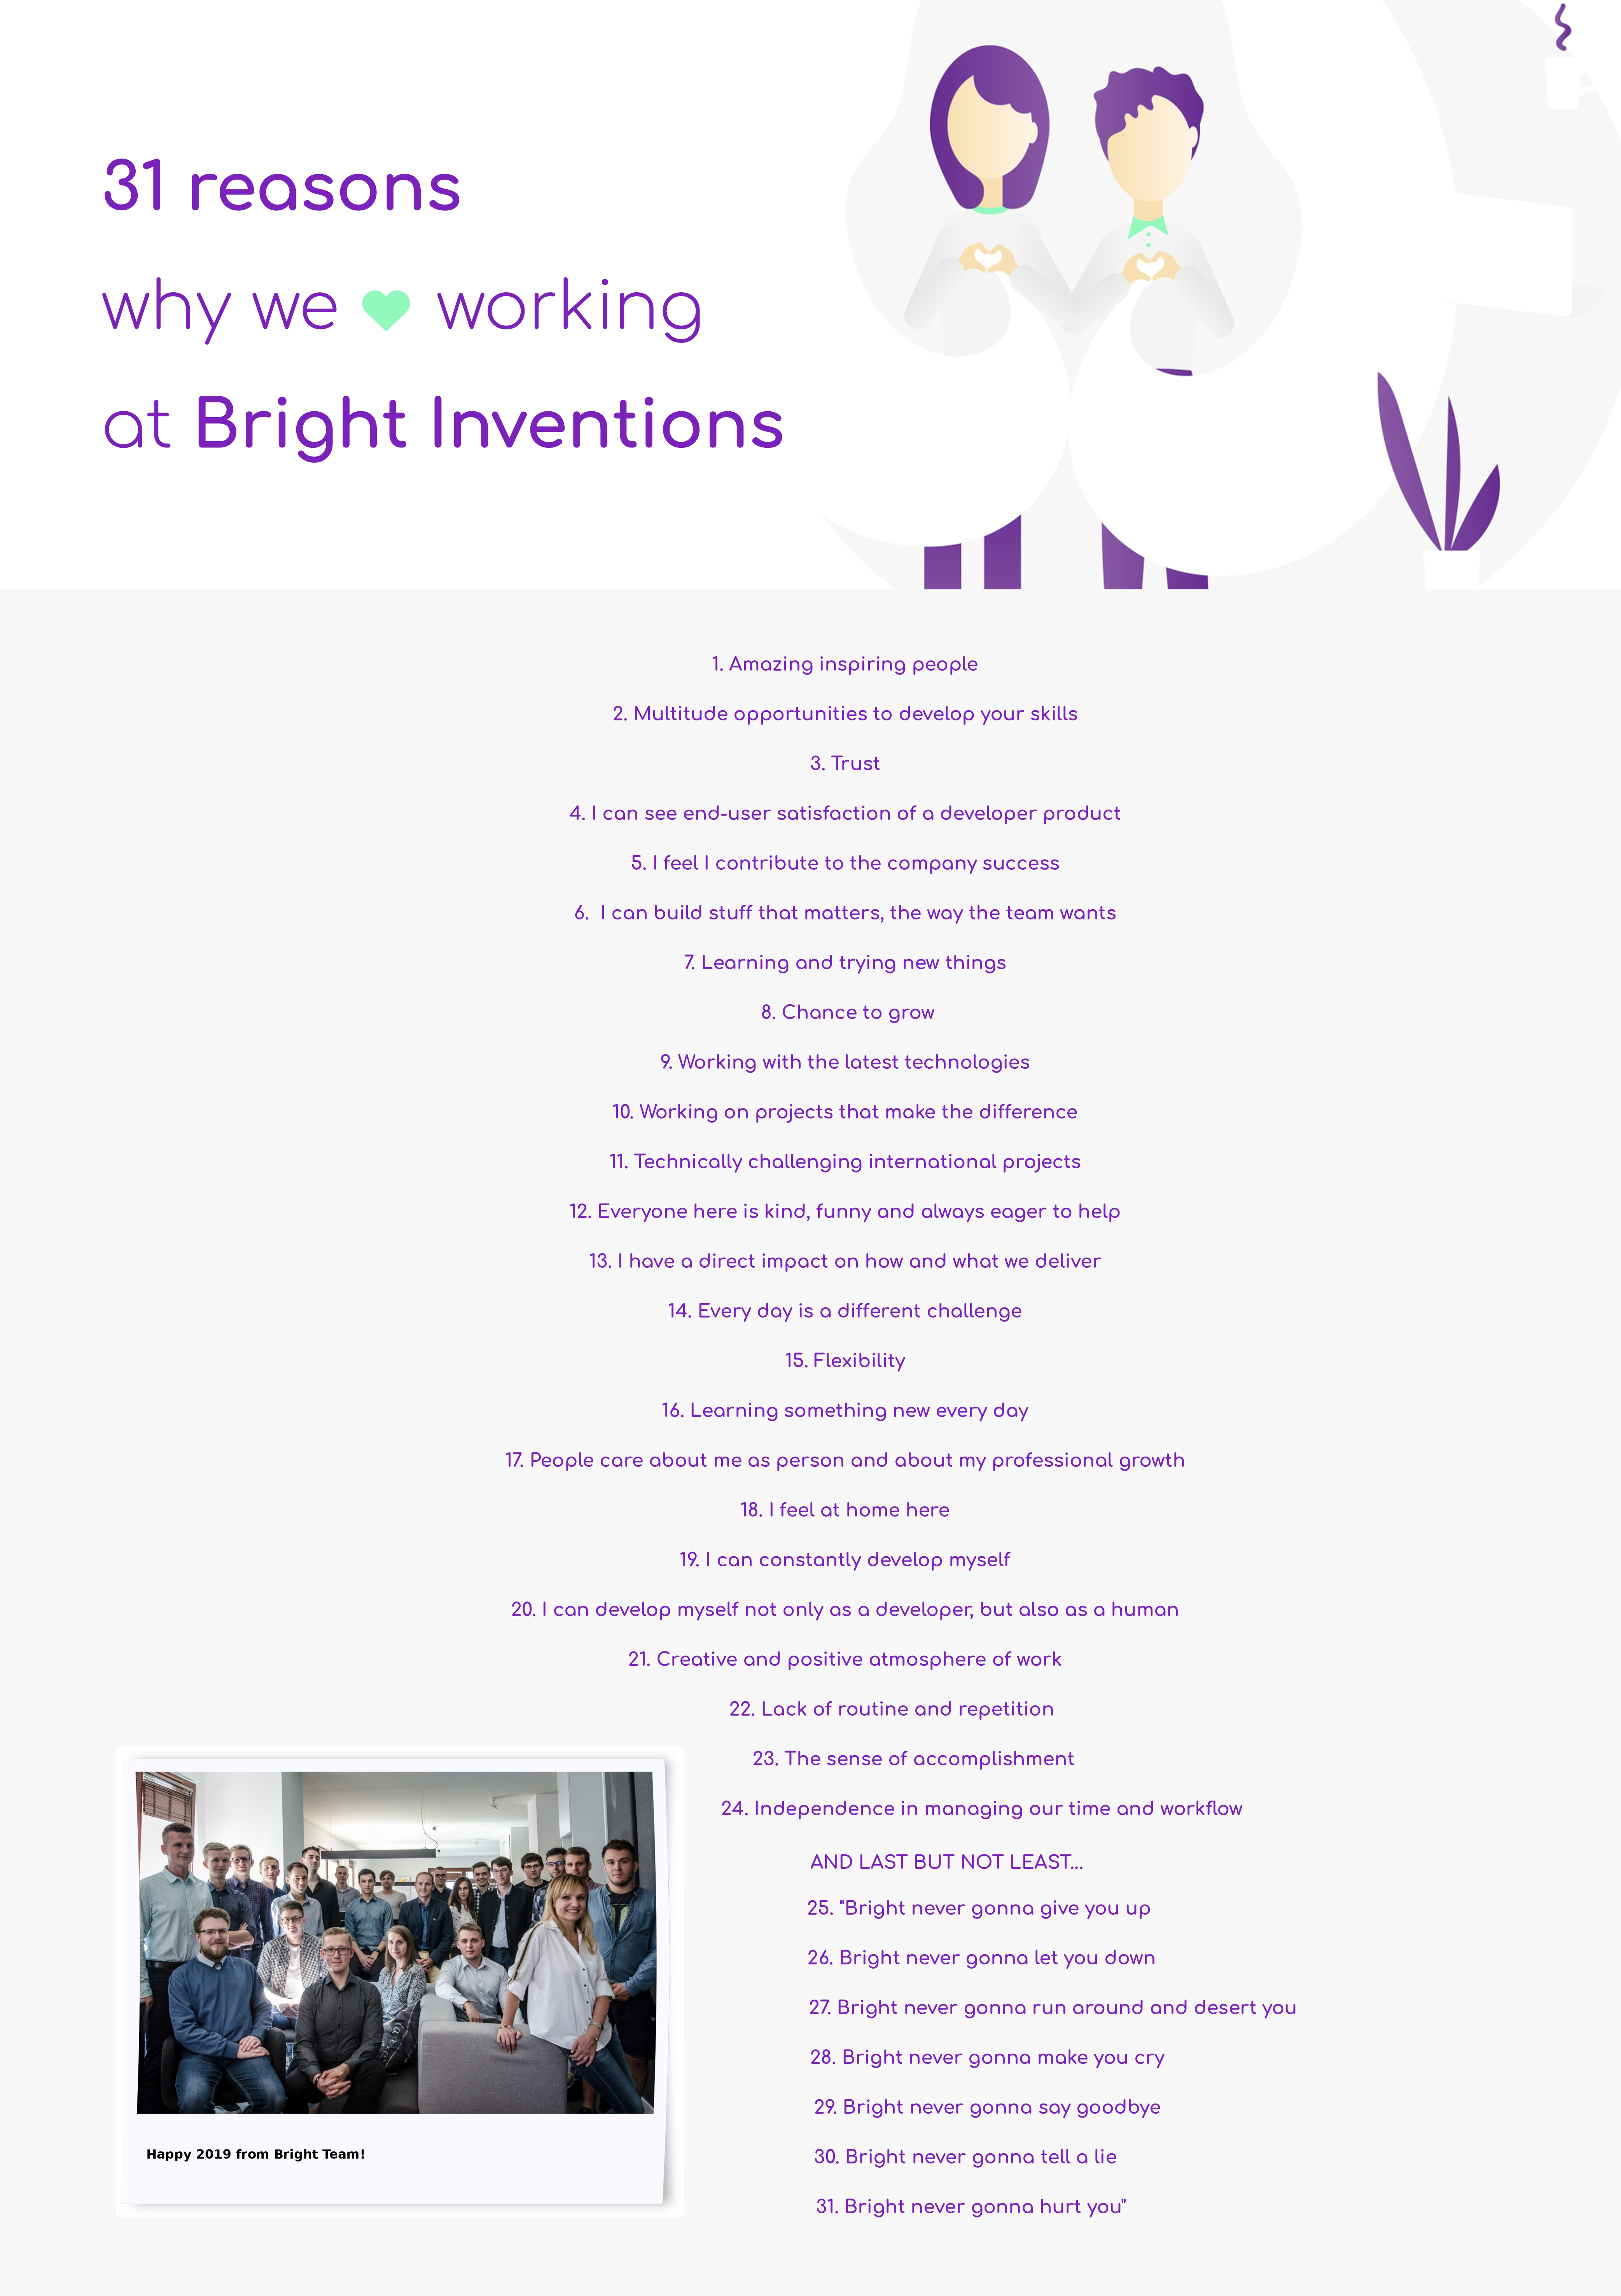 31 reasons why we love working at Bright Inventions